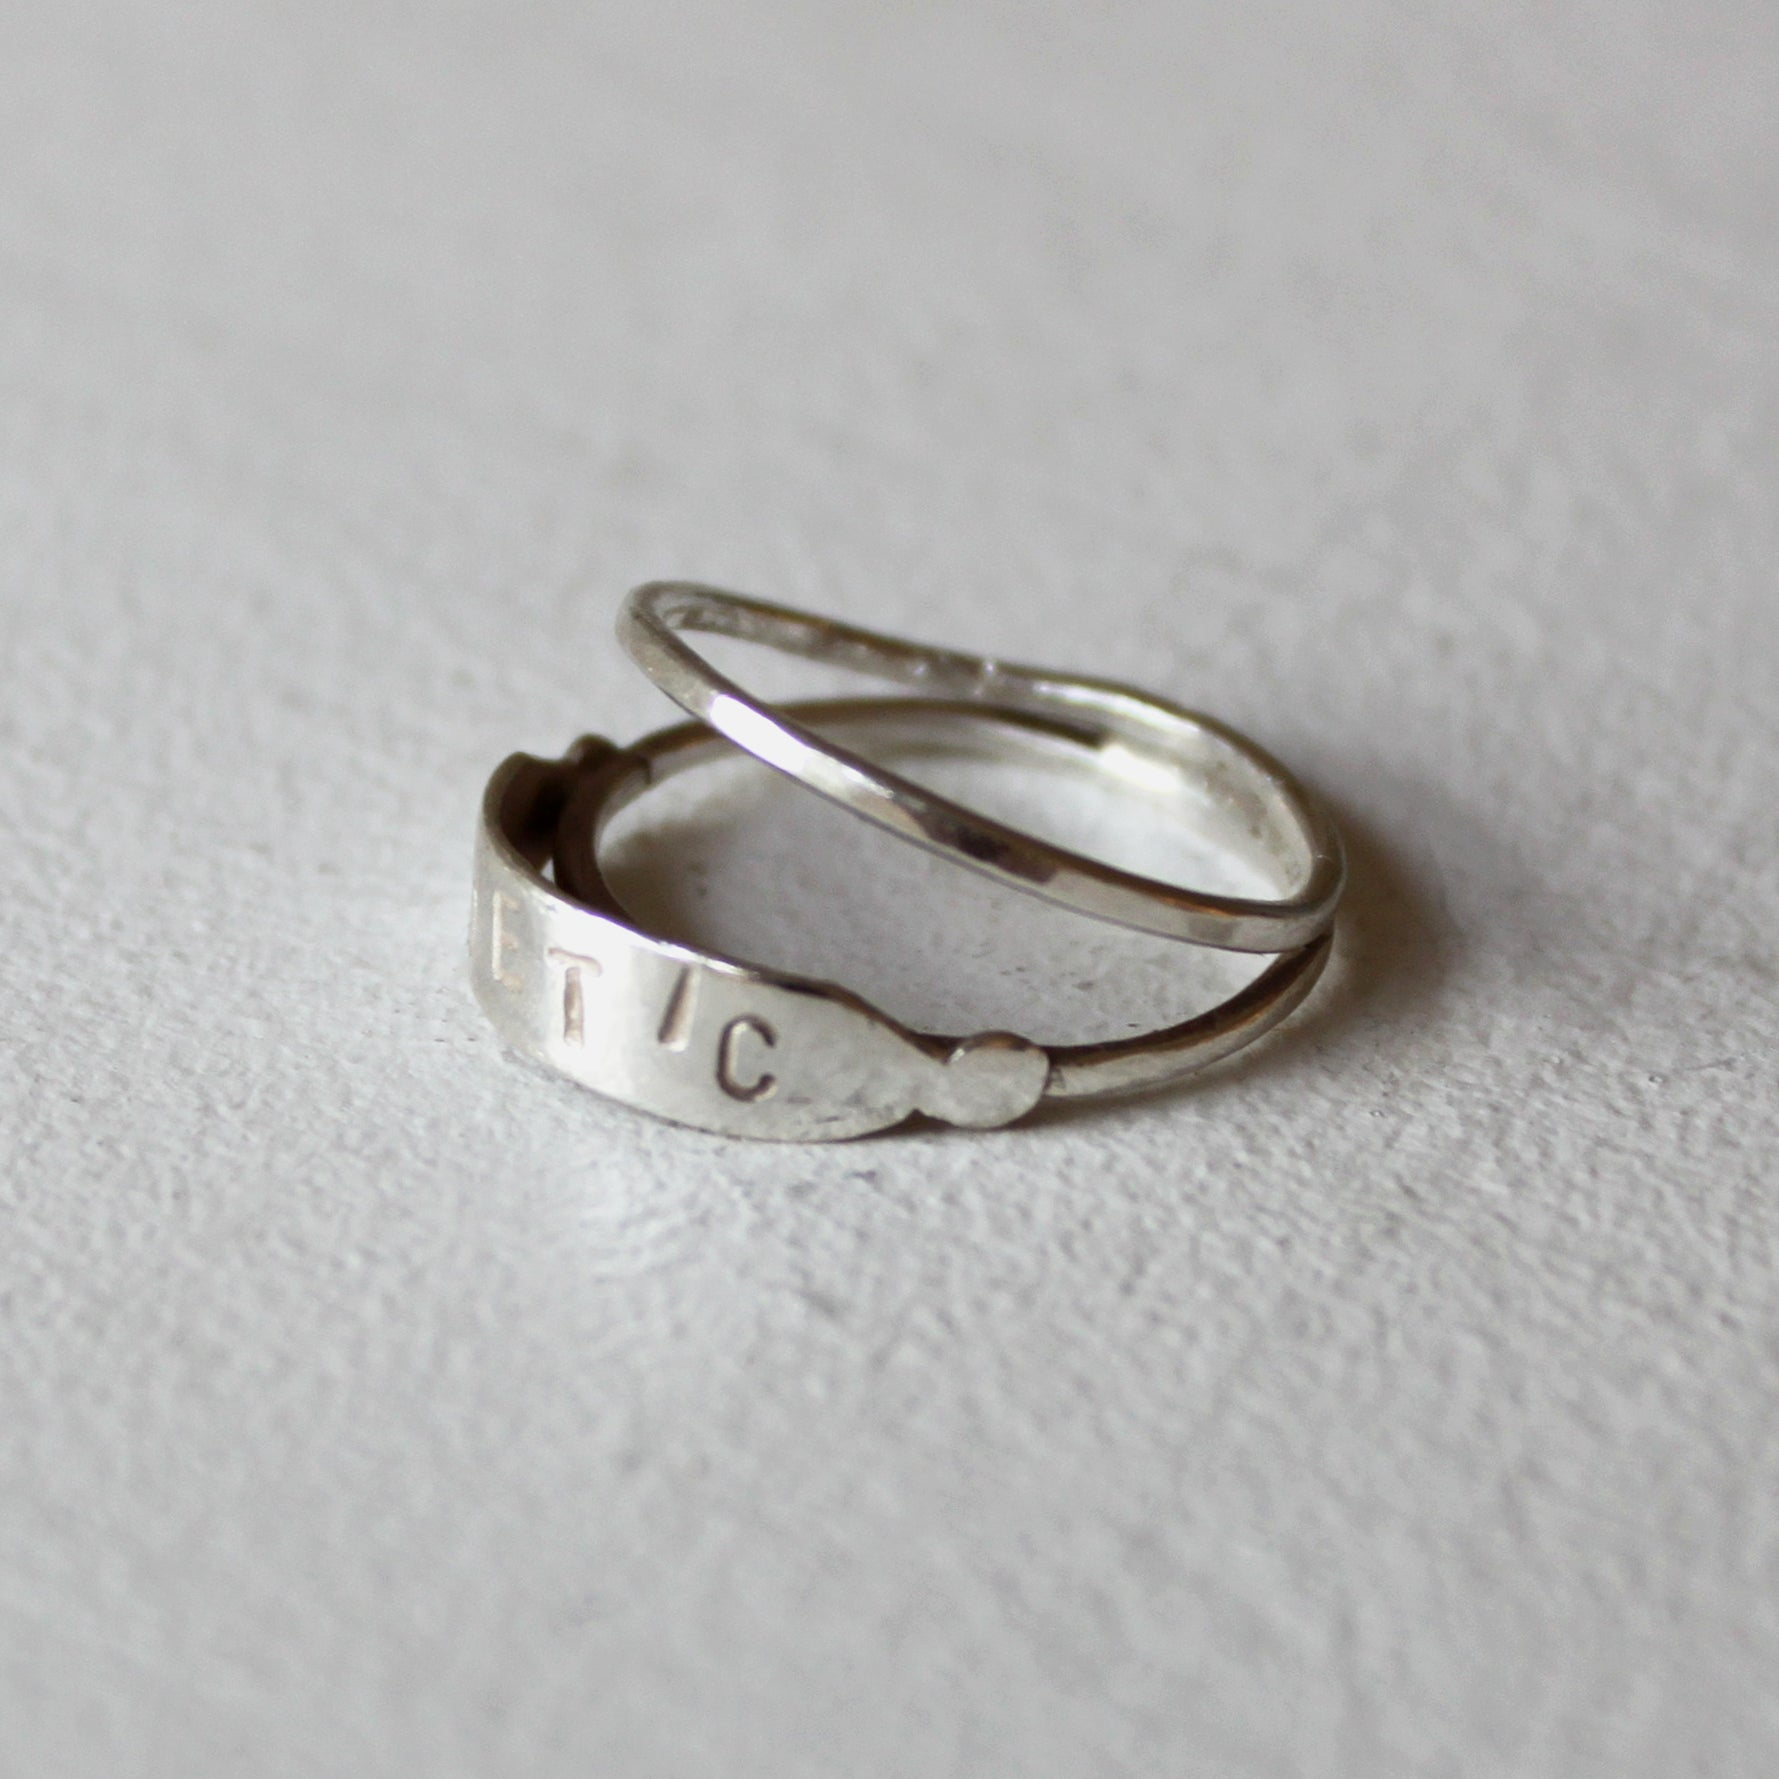 ORNAMENT & CRIME 'BEAU' DOUBLE BAND RING WITH 'POETIC' ENGRAVED  OC19